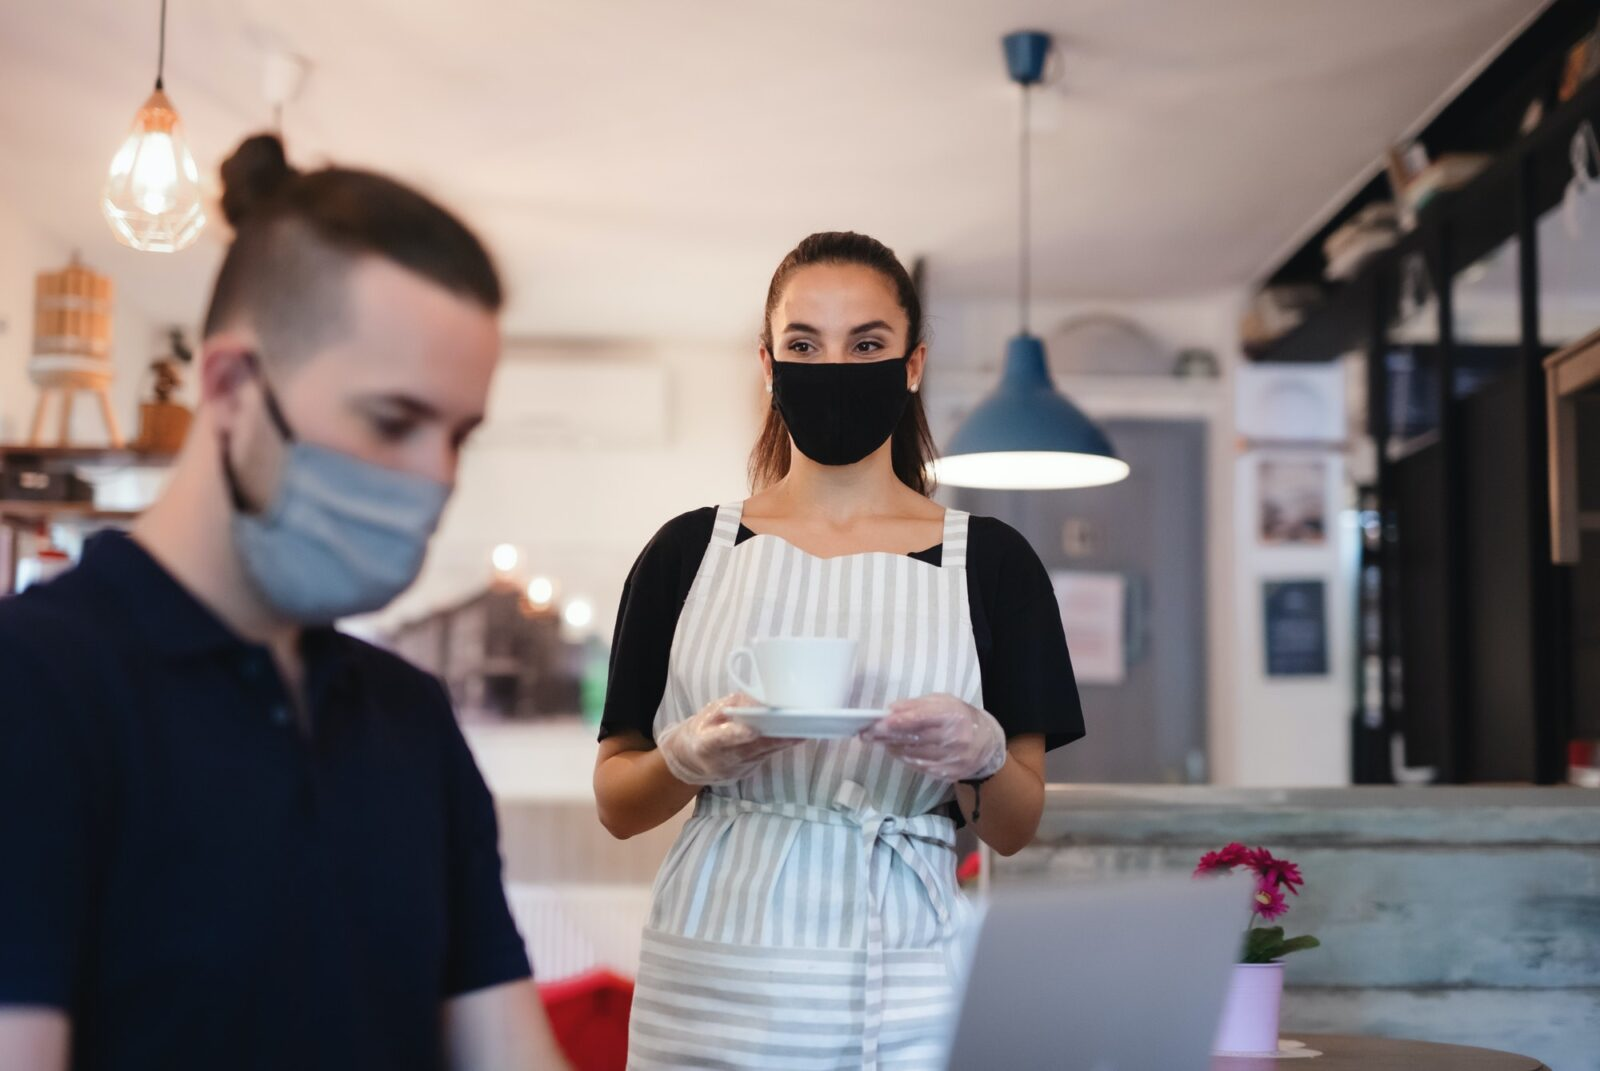 Young waitress with face mask working indoors in cafe, serving customer